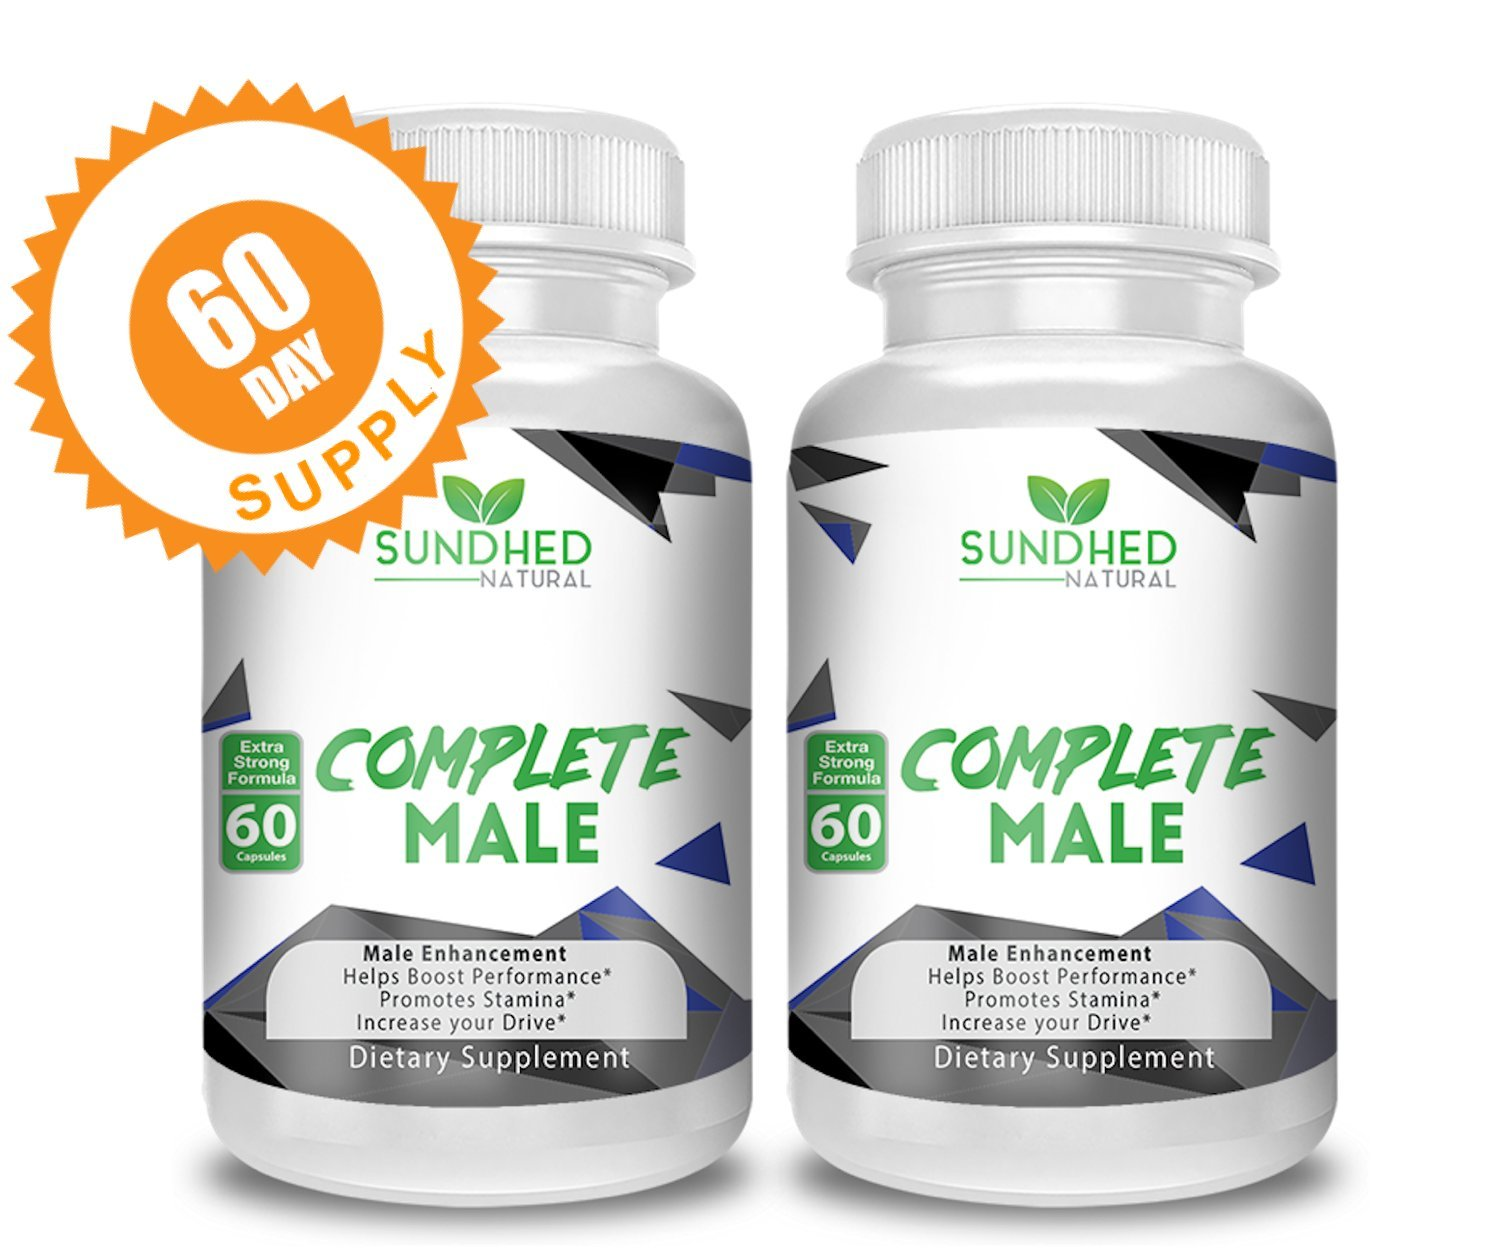 Sundhed Natural Complete Male (120 Veggie Caps) - All Natural Male Enhancement & Libido Supplement - Mens Vitality Boost Performance Promote Stamina & Increase Your Drive - 60 Day Supply